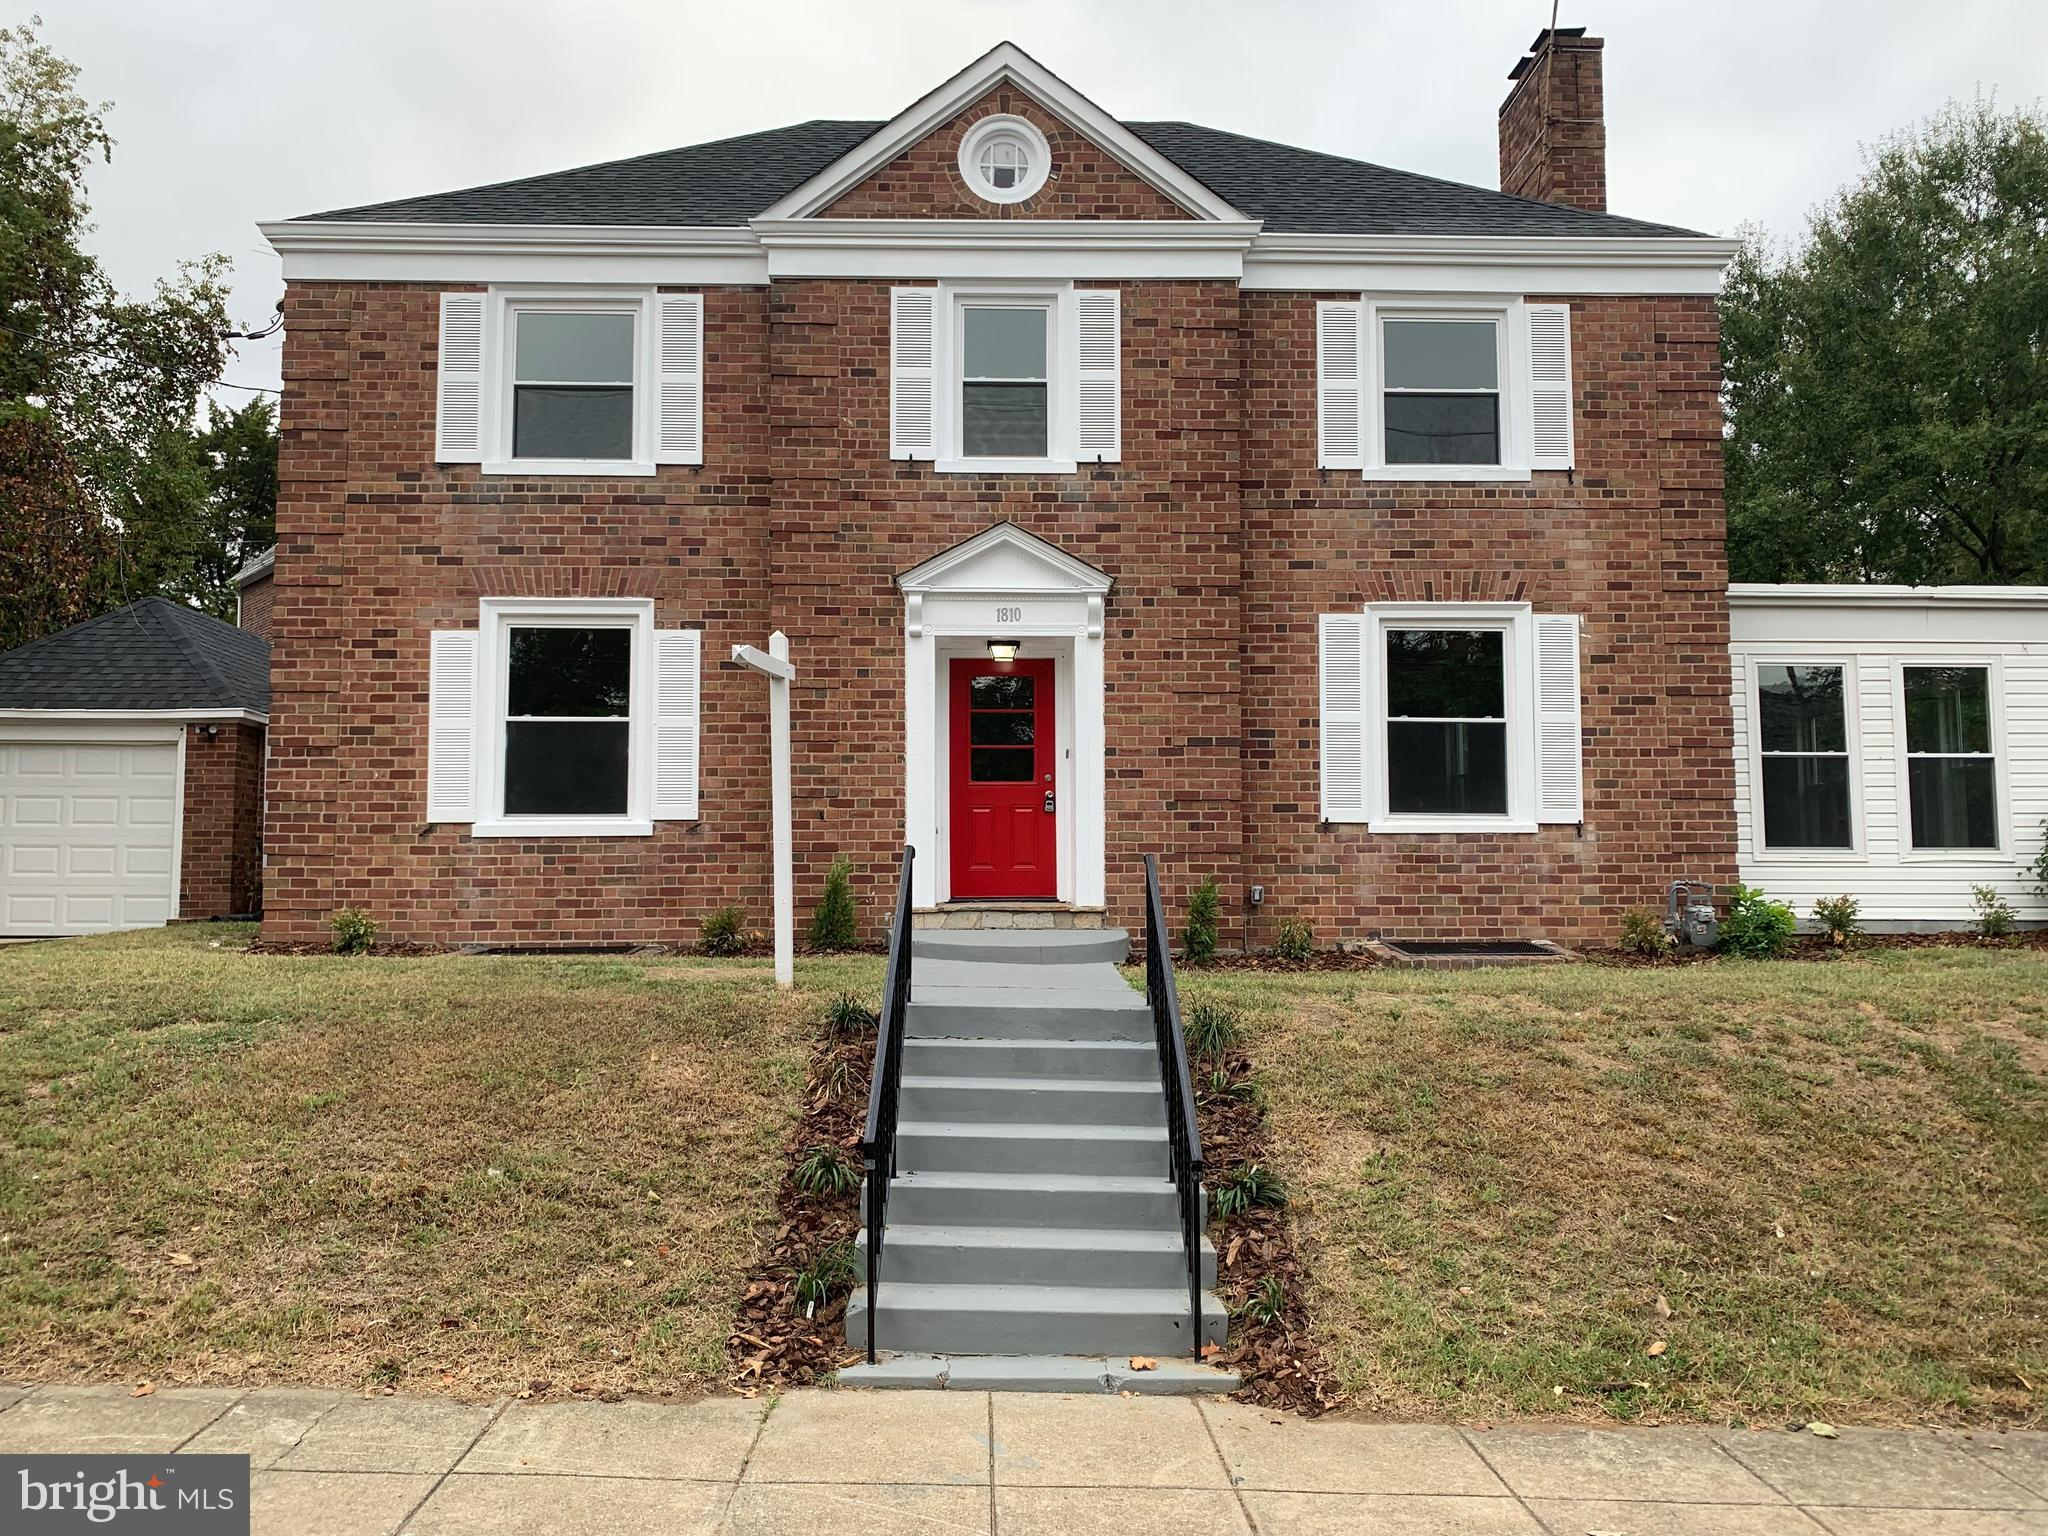 Enjoy this bright, fully-renovated, 7-bedroom, 4-bathroom detached home in the sought-after Woodridge neighborhood. The kitchen boasts new shaker style cabinets, granite countertops, stainless steel appliances and a custom-crafted kitchen island with seating that allows you to cook and entertain guests at the same time.  Entertain family and friends on a first floor that nicely transitions between the kitchen, dining and living rooms to a sunroom that allow you to absorb the sun rising each morning in the east.  Family options is where this house really shines.  The large and spacious bedrooms include 2 master suites.  One is on the main floor and second one is on the second level.  The bedrooms have large, spacious closets, a rare find in DC. All new HVAC, plumbing and electrical throughout the home.  Additional options include rough-in plumbing and electrical wiring for a basement kitchenette and rough-in plumbing for a stackable washer and dryer on the 2nd floor in the event you want to earn rental income with a two-bedroom basement.  Call CSS to schedule showings starting Saturday, October 5th. Please direct all questions to Edivia Henderson at (301) 312-2733.